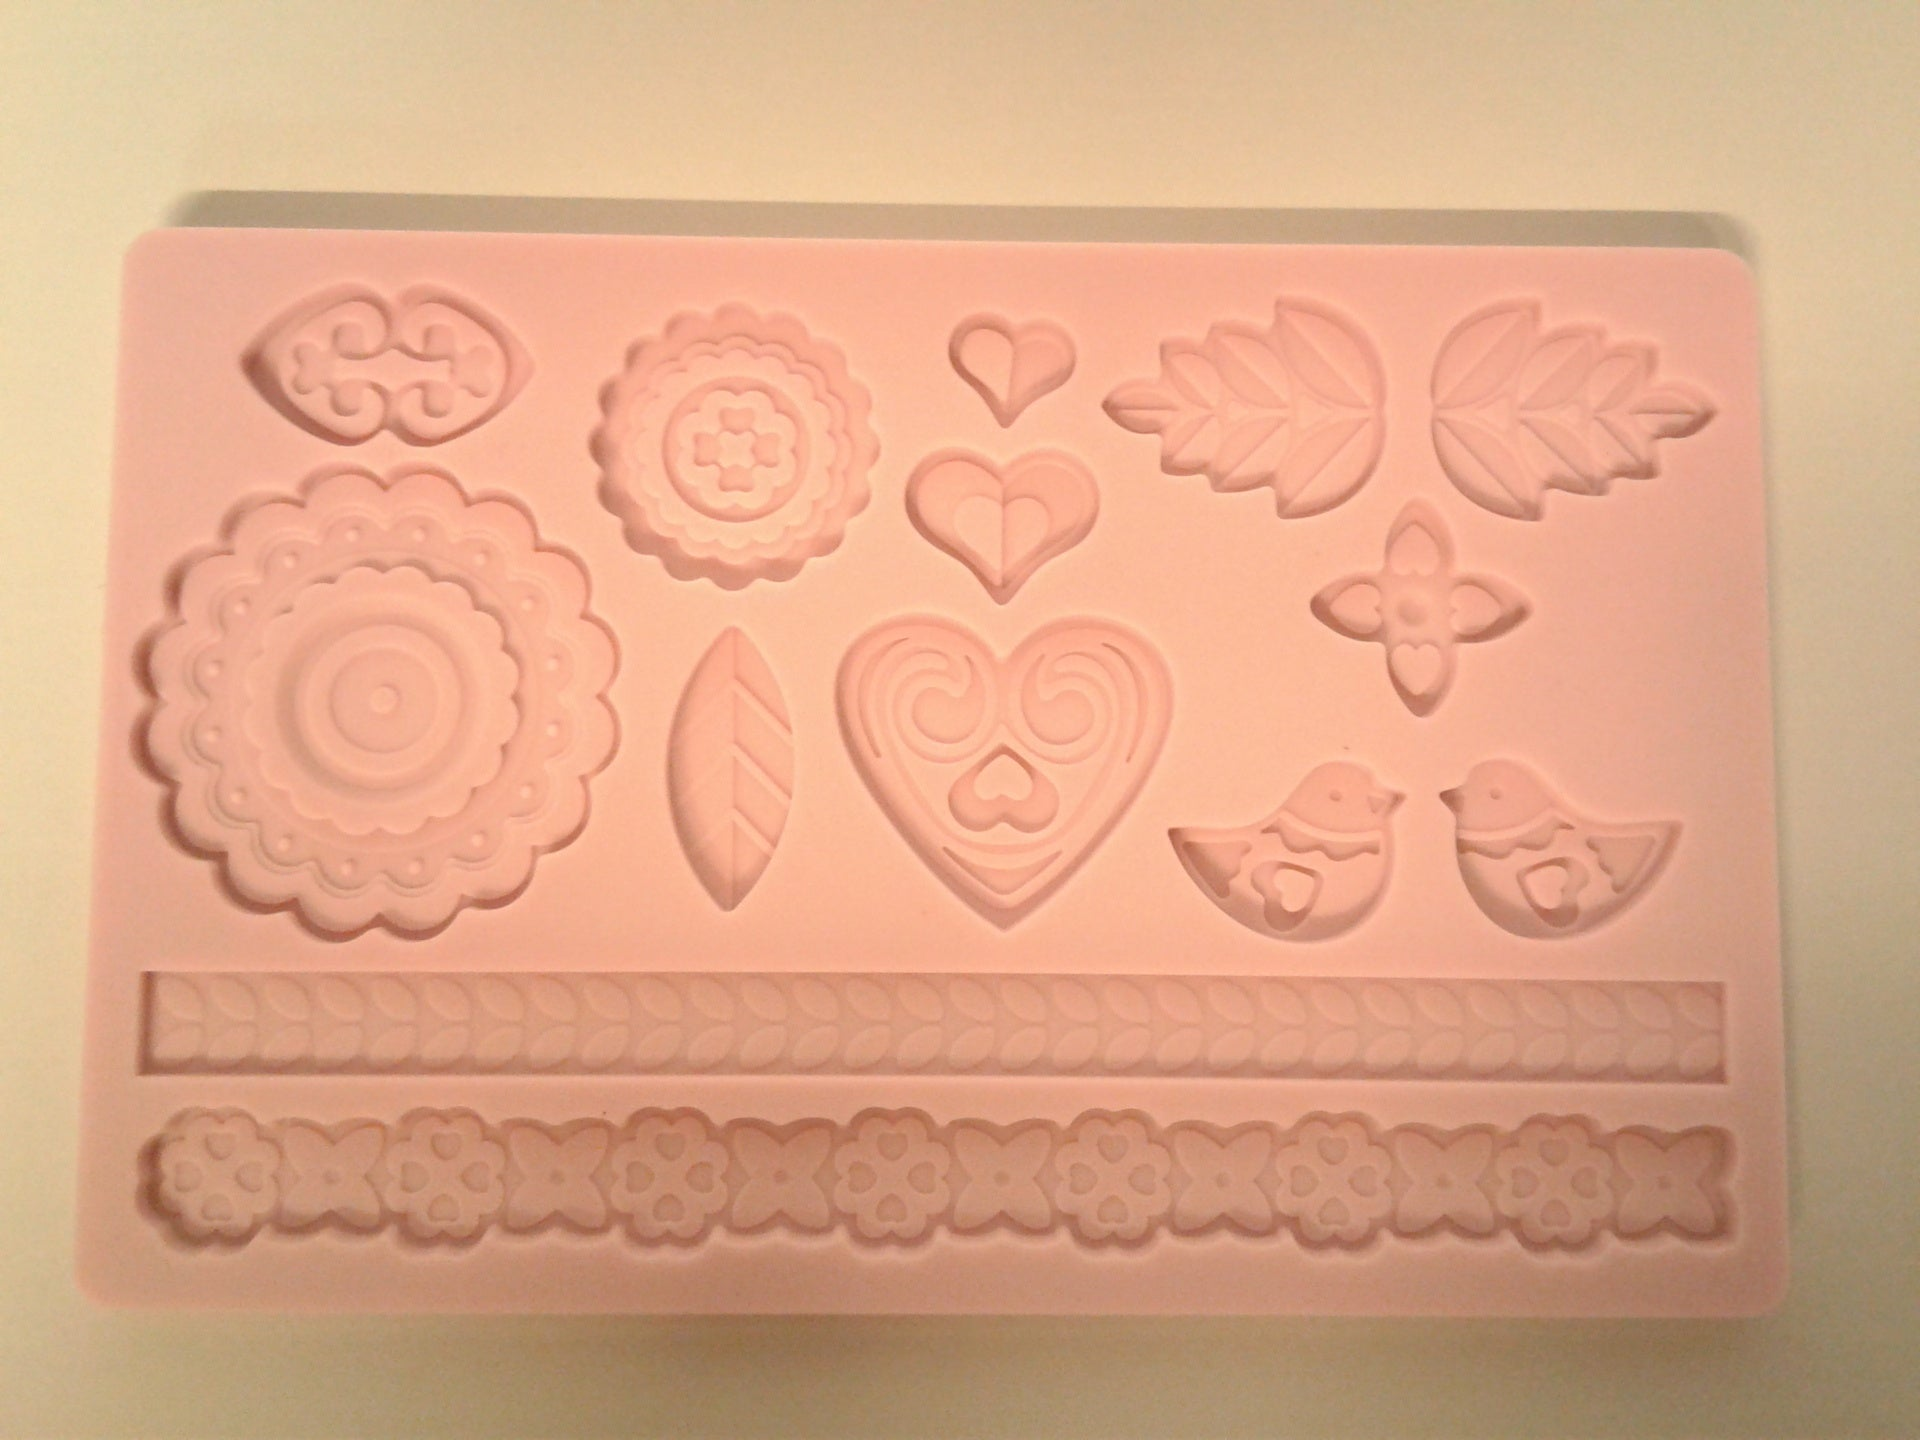 Bird, Petal, Heart Large Silicone Mold